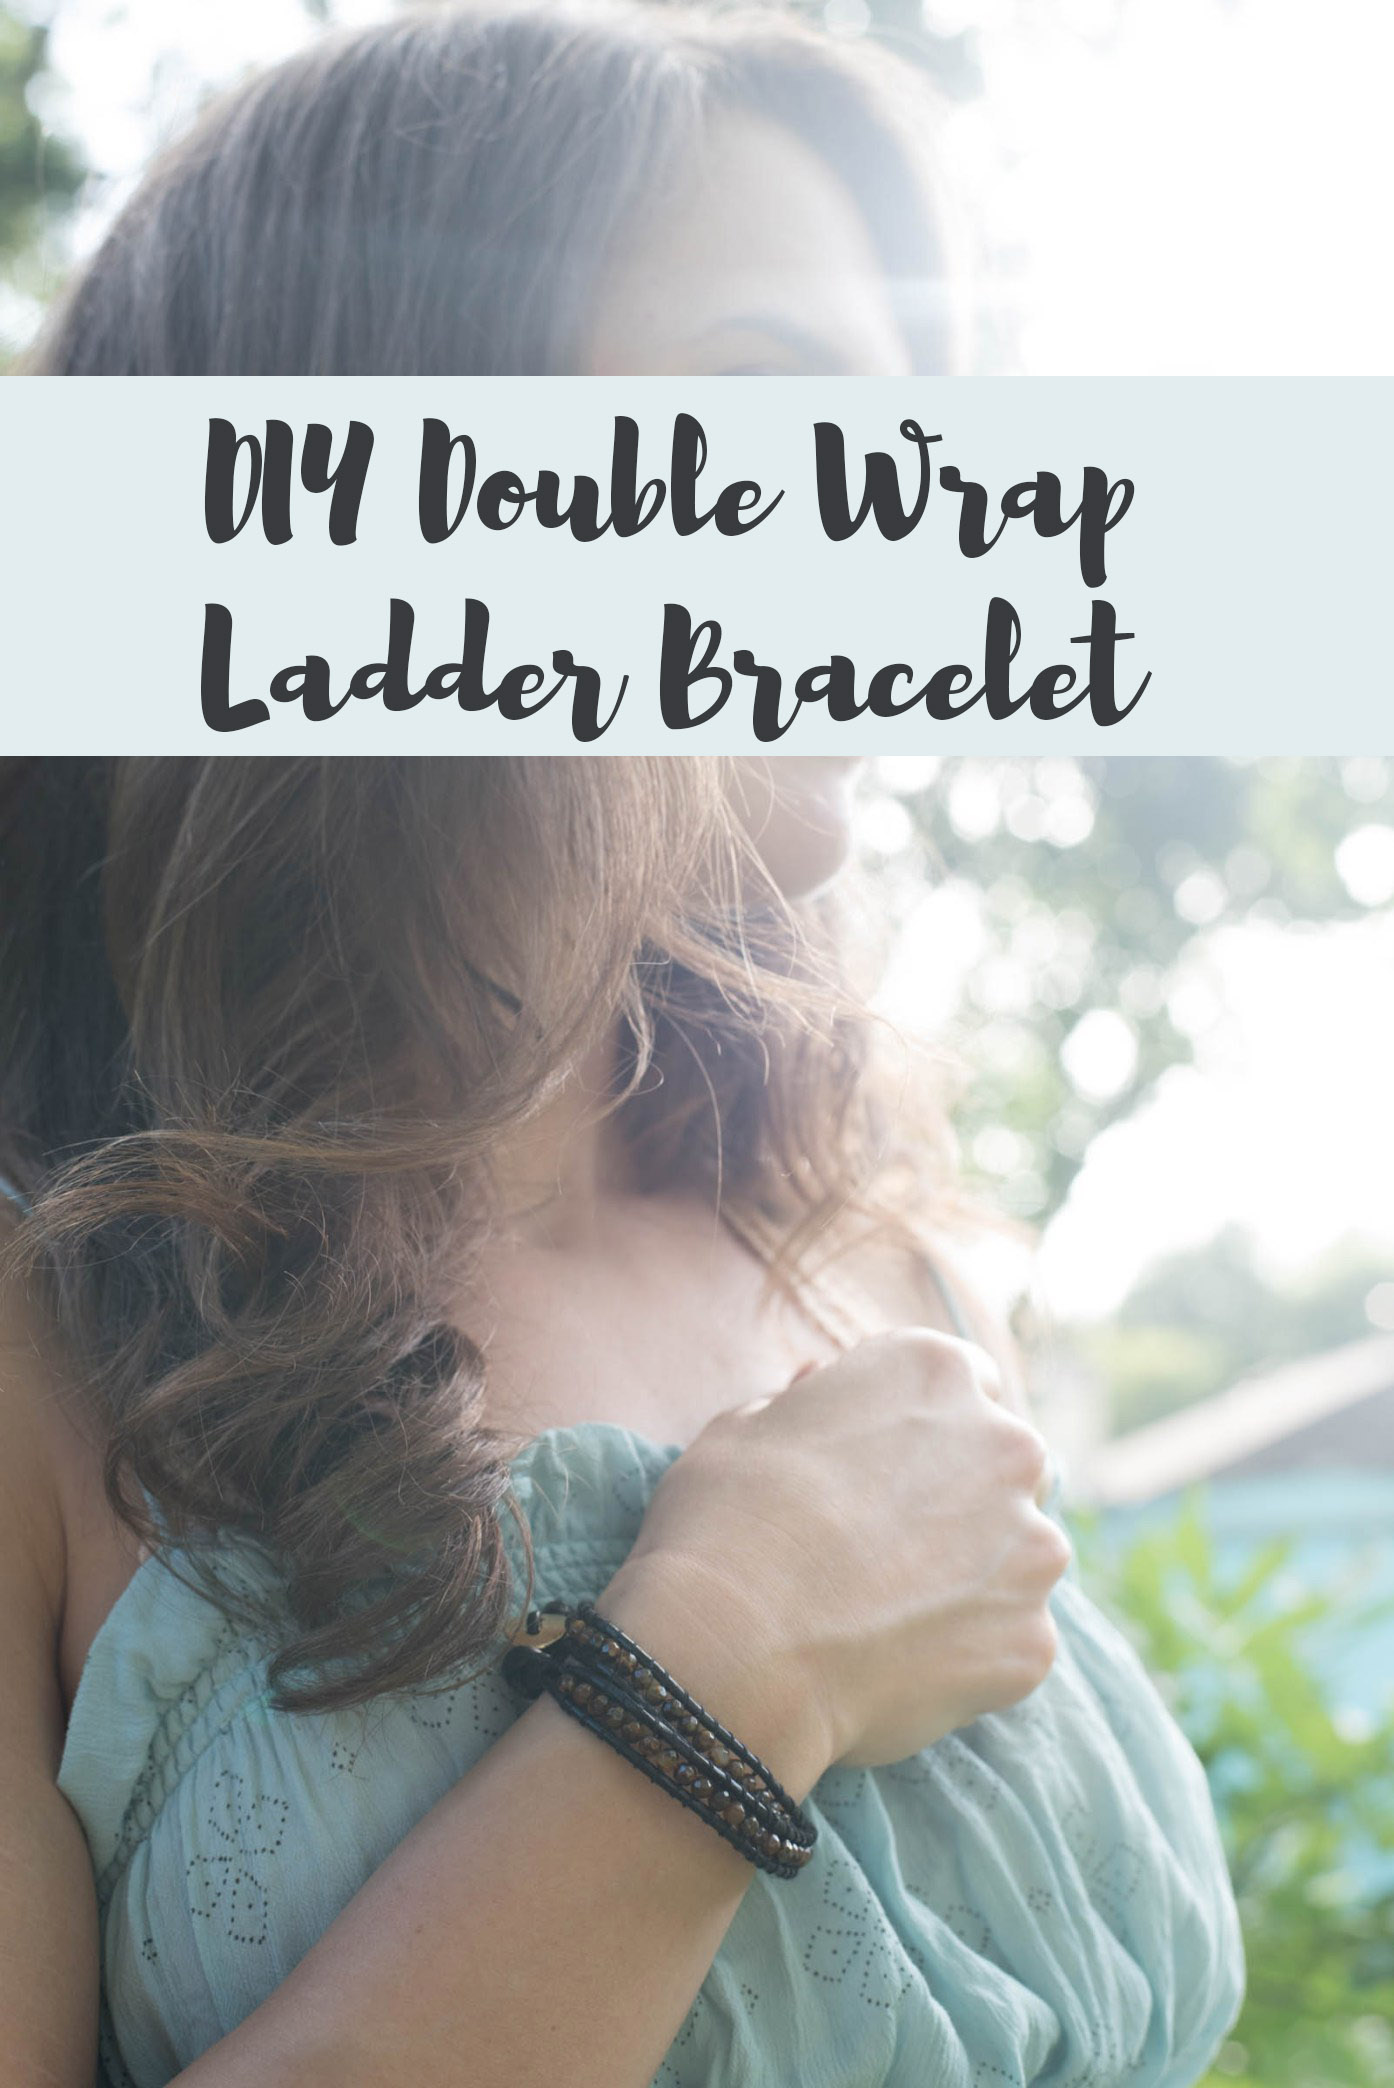 diy wrapped ladder bracelet